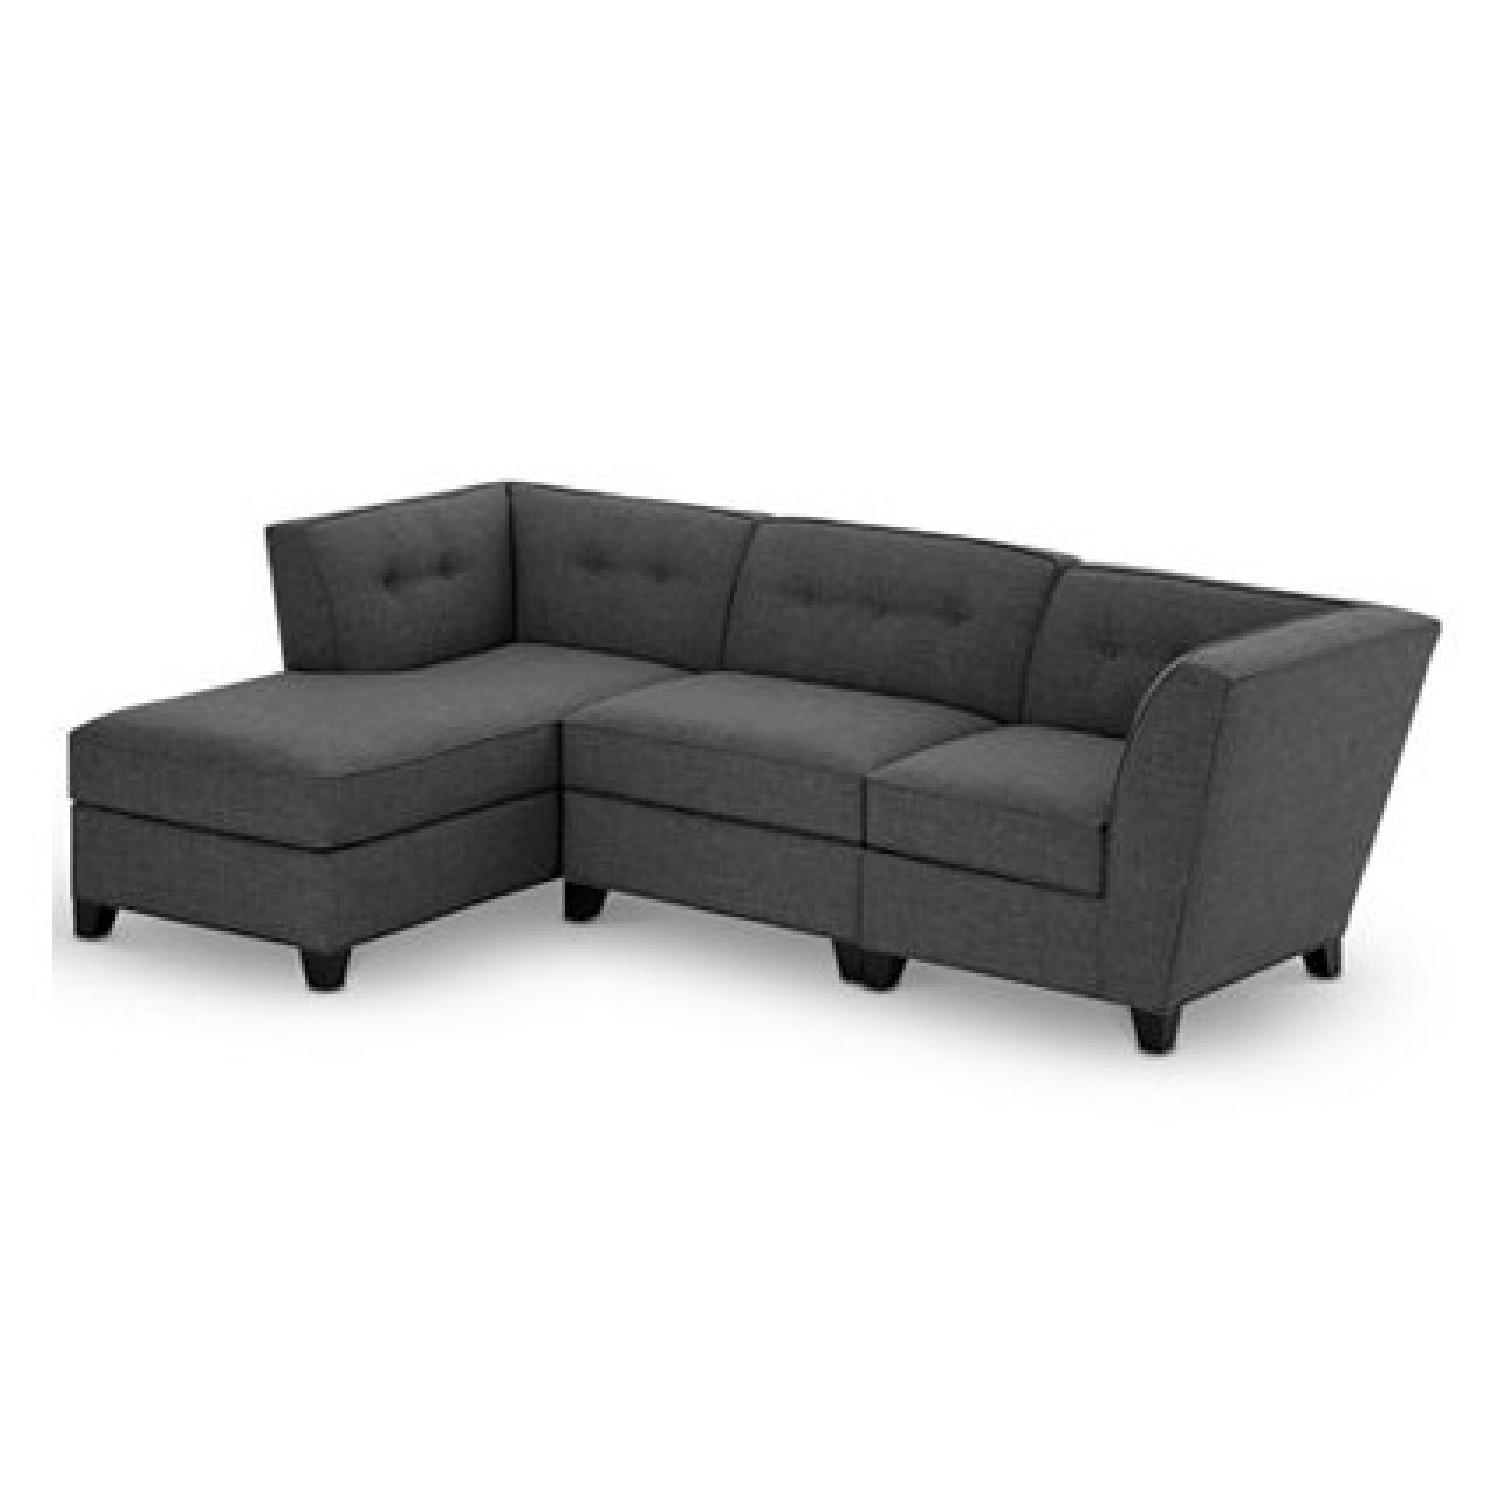 Macy's Harper Fabric 3 Piece Modular Chaise Sectional – Aptdeco Pertaining To Macys Sofas (View 19 of 20)